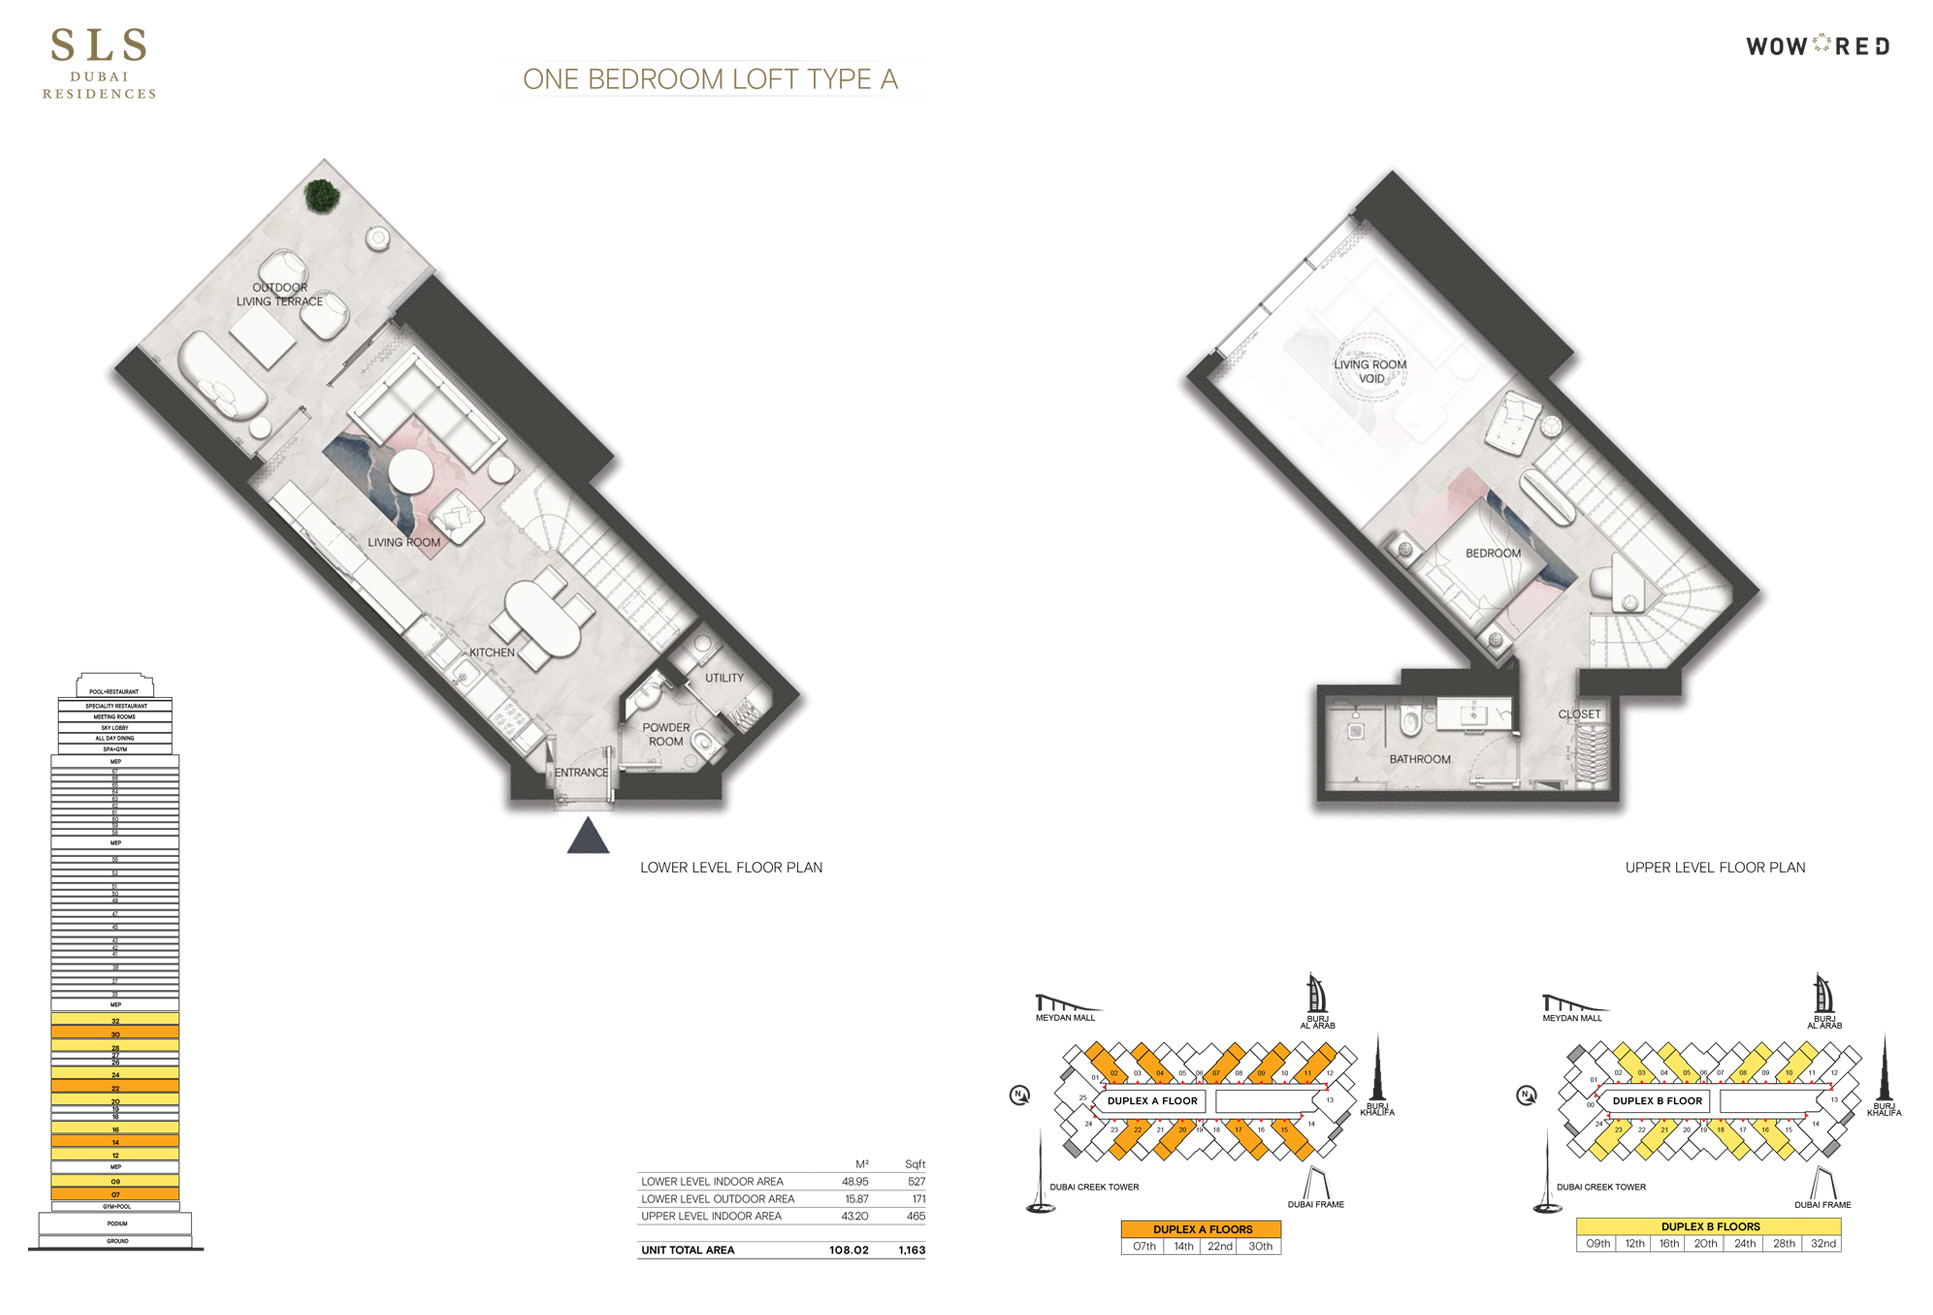 1 Bedroom Loft Type A Size 1163 sq.ft